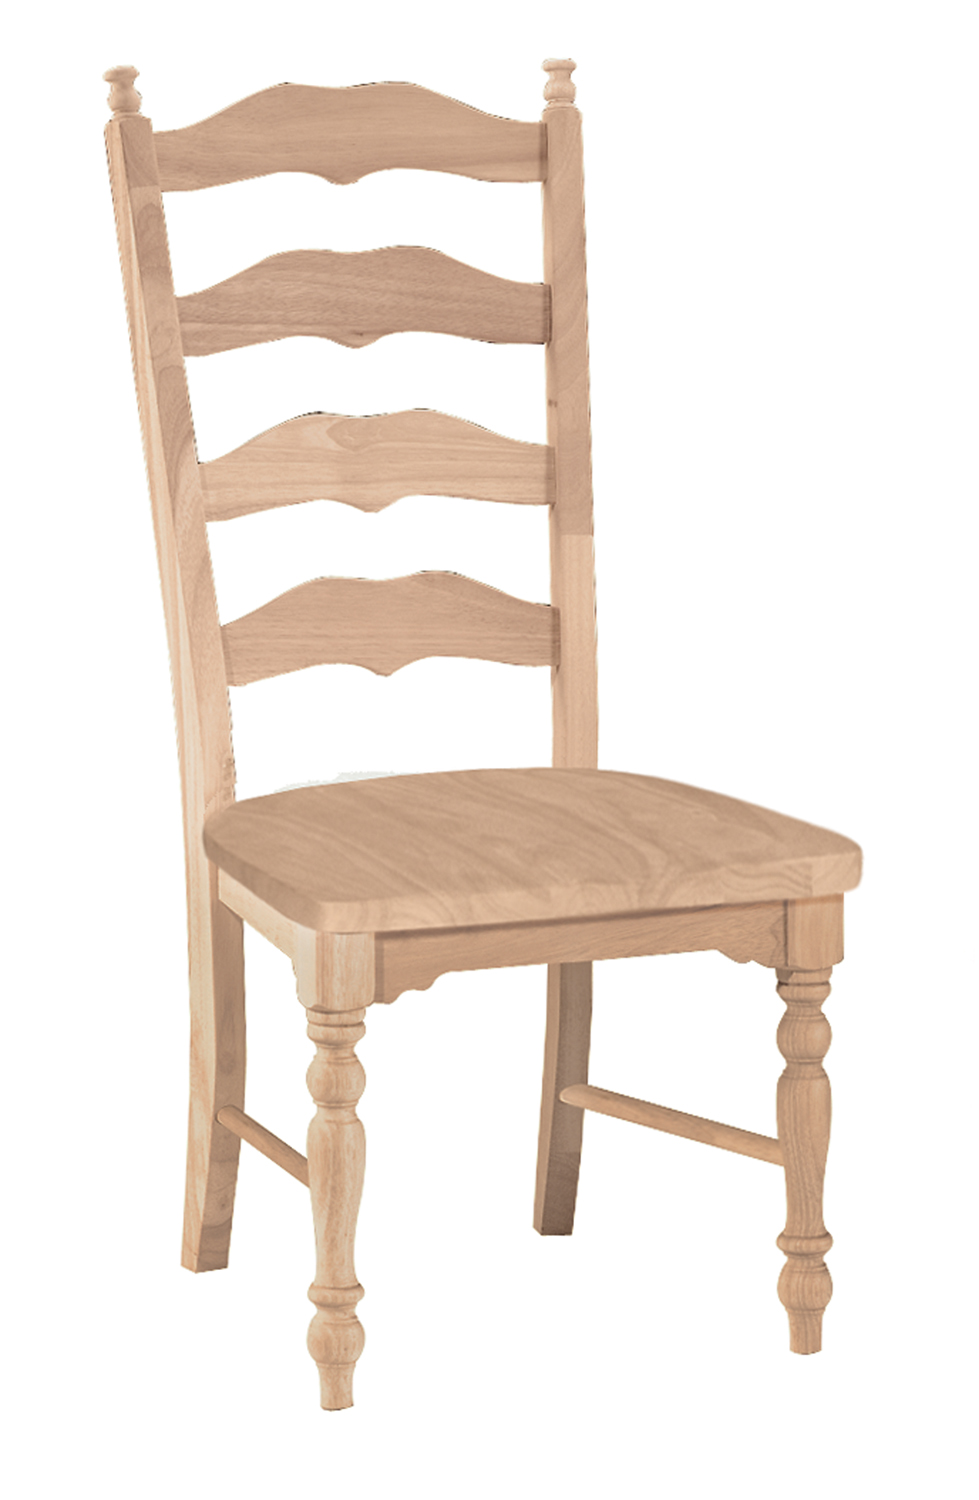 Maine Ladderback Arm Chair Available Width 19 3 4 Depth 18 1 Height 42 Made Of Parawood